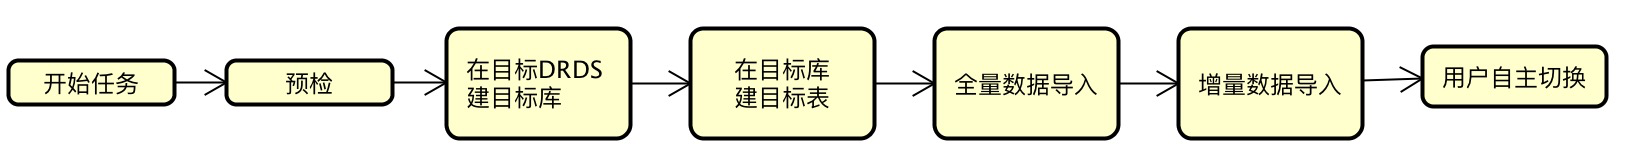 evaluate import flow chart 1.png